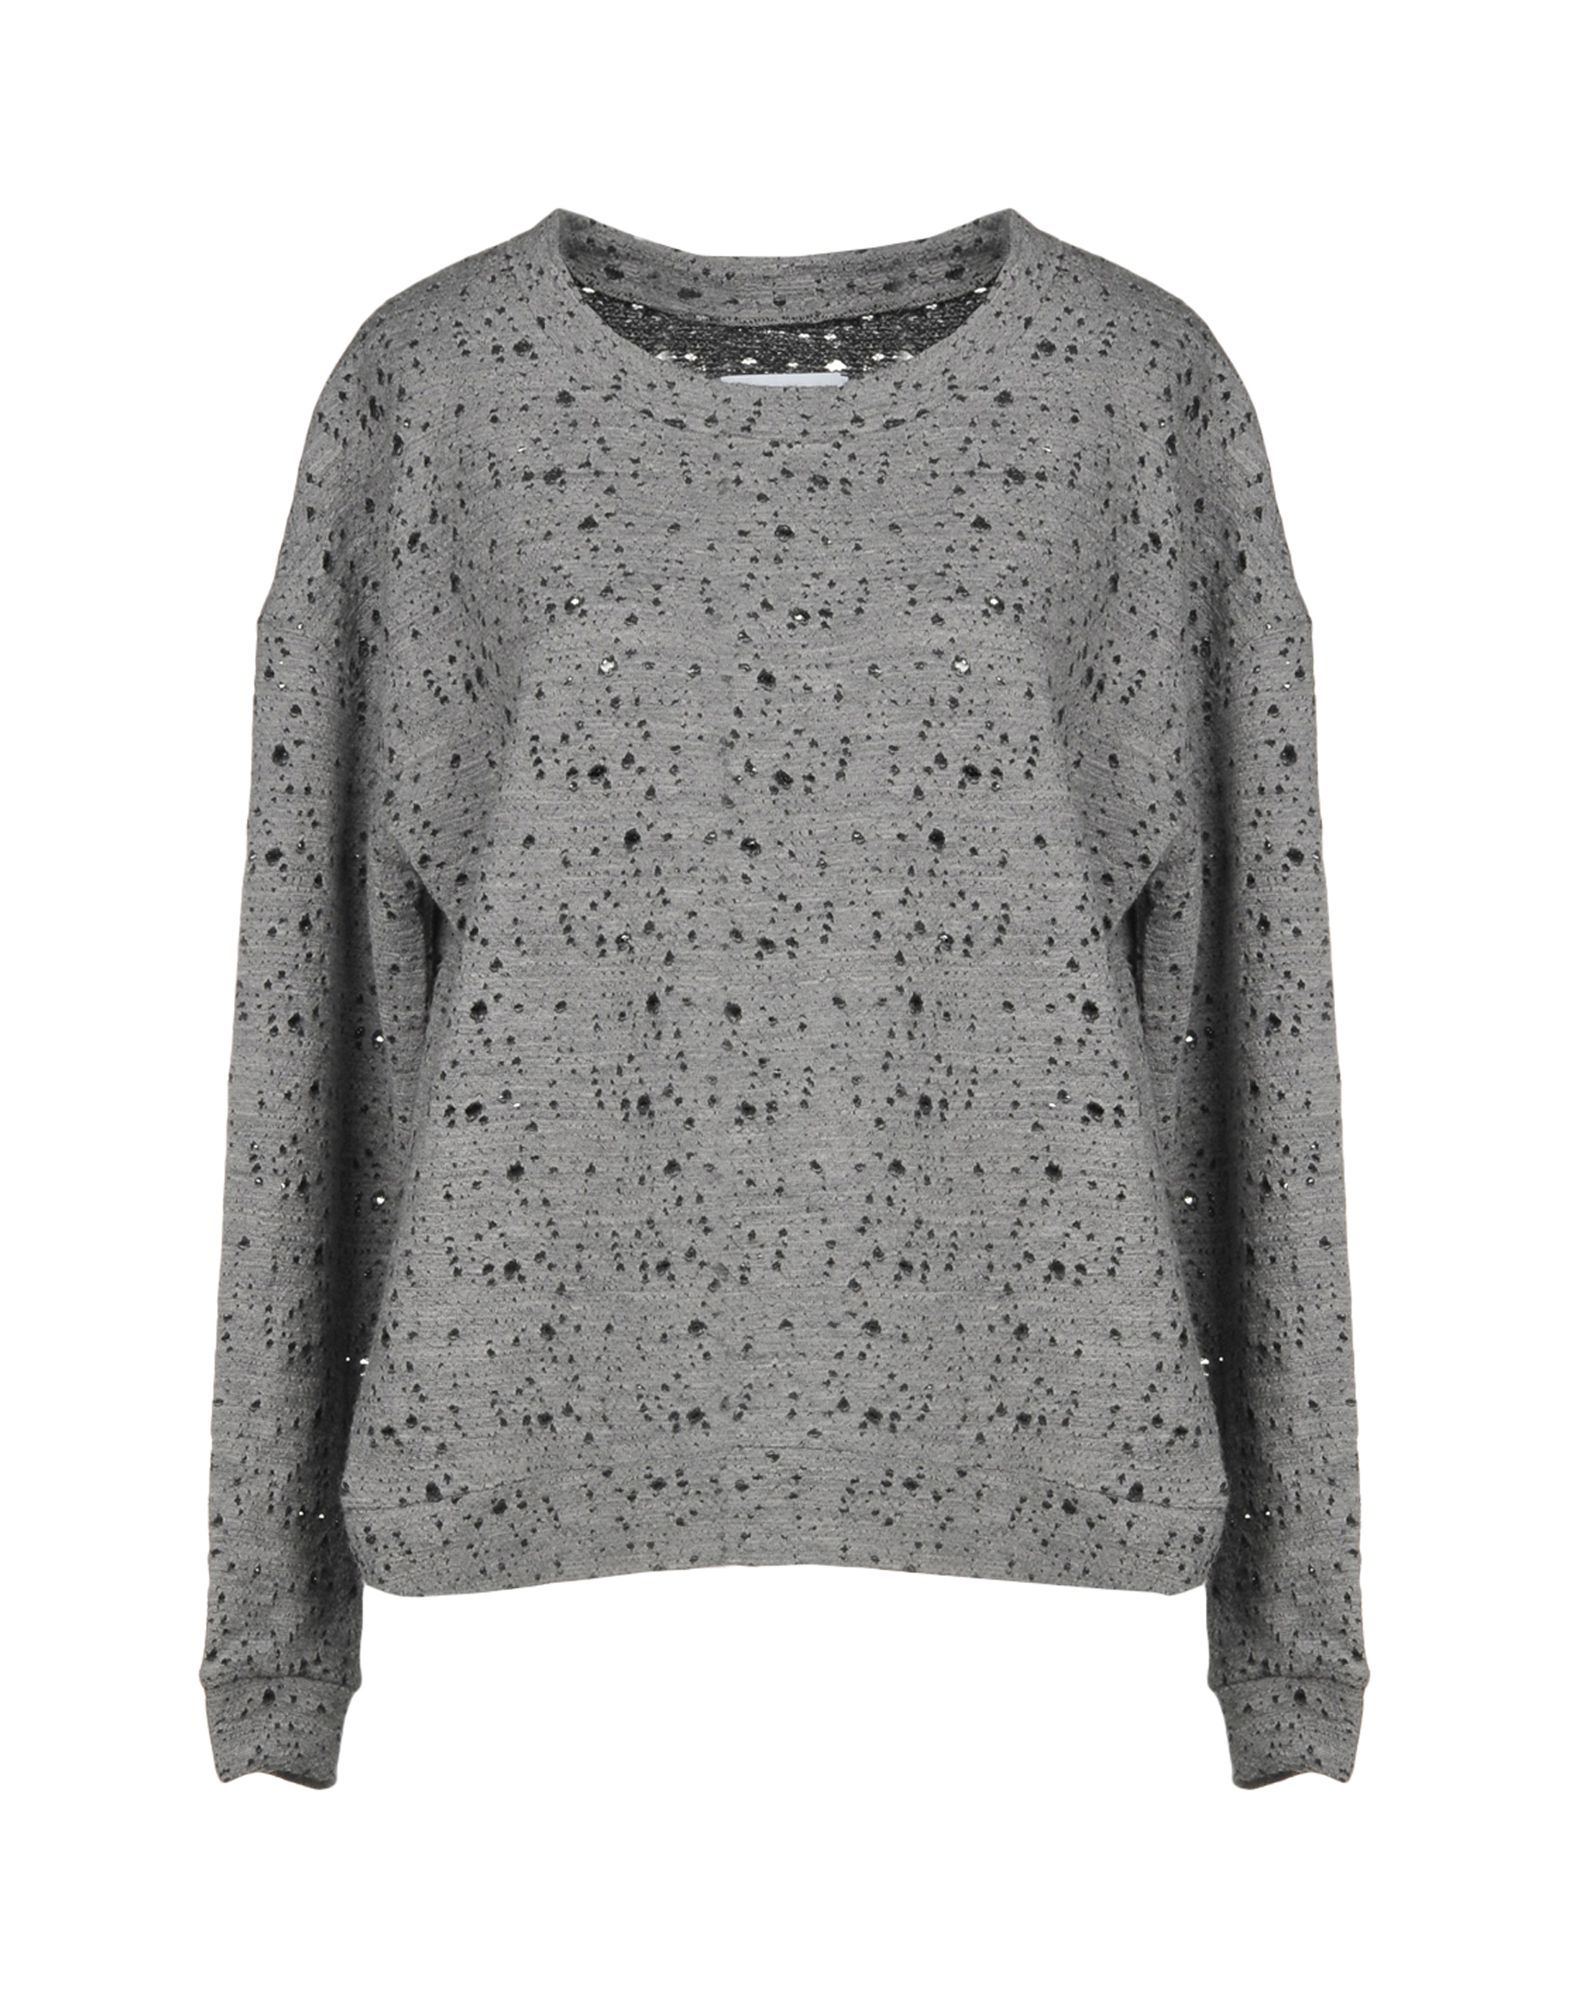 FINE COLLECTION Sweater in Light Grey